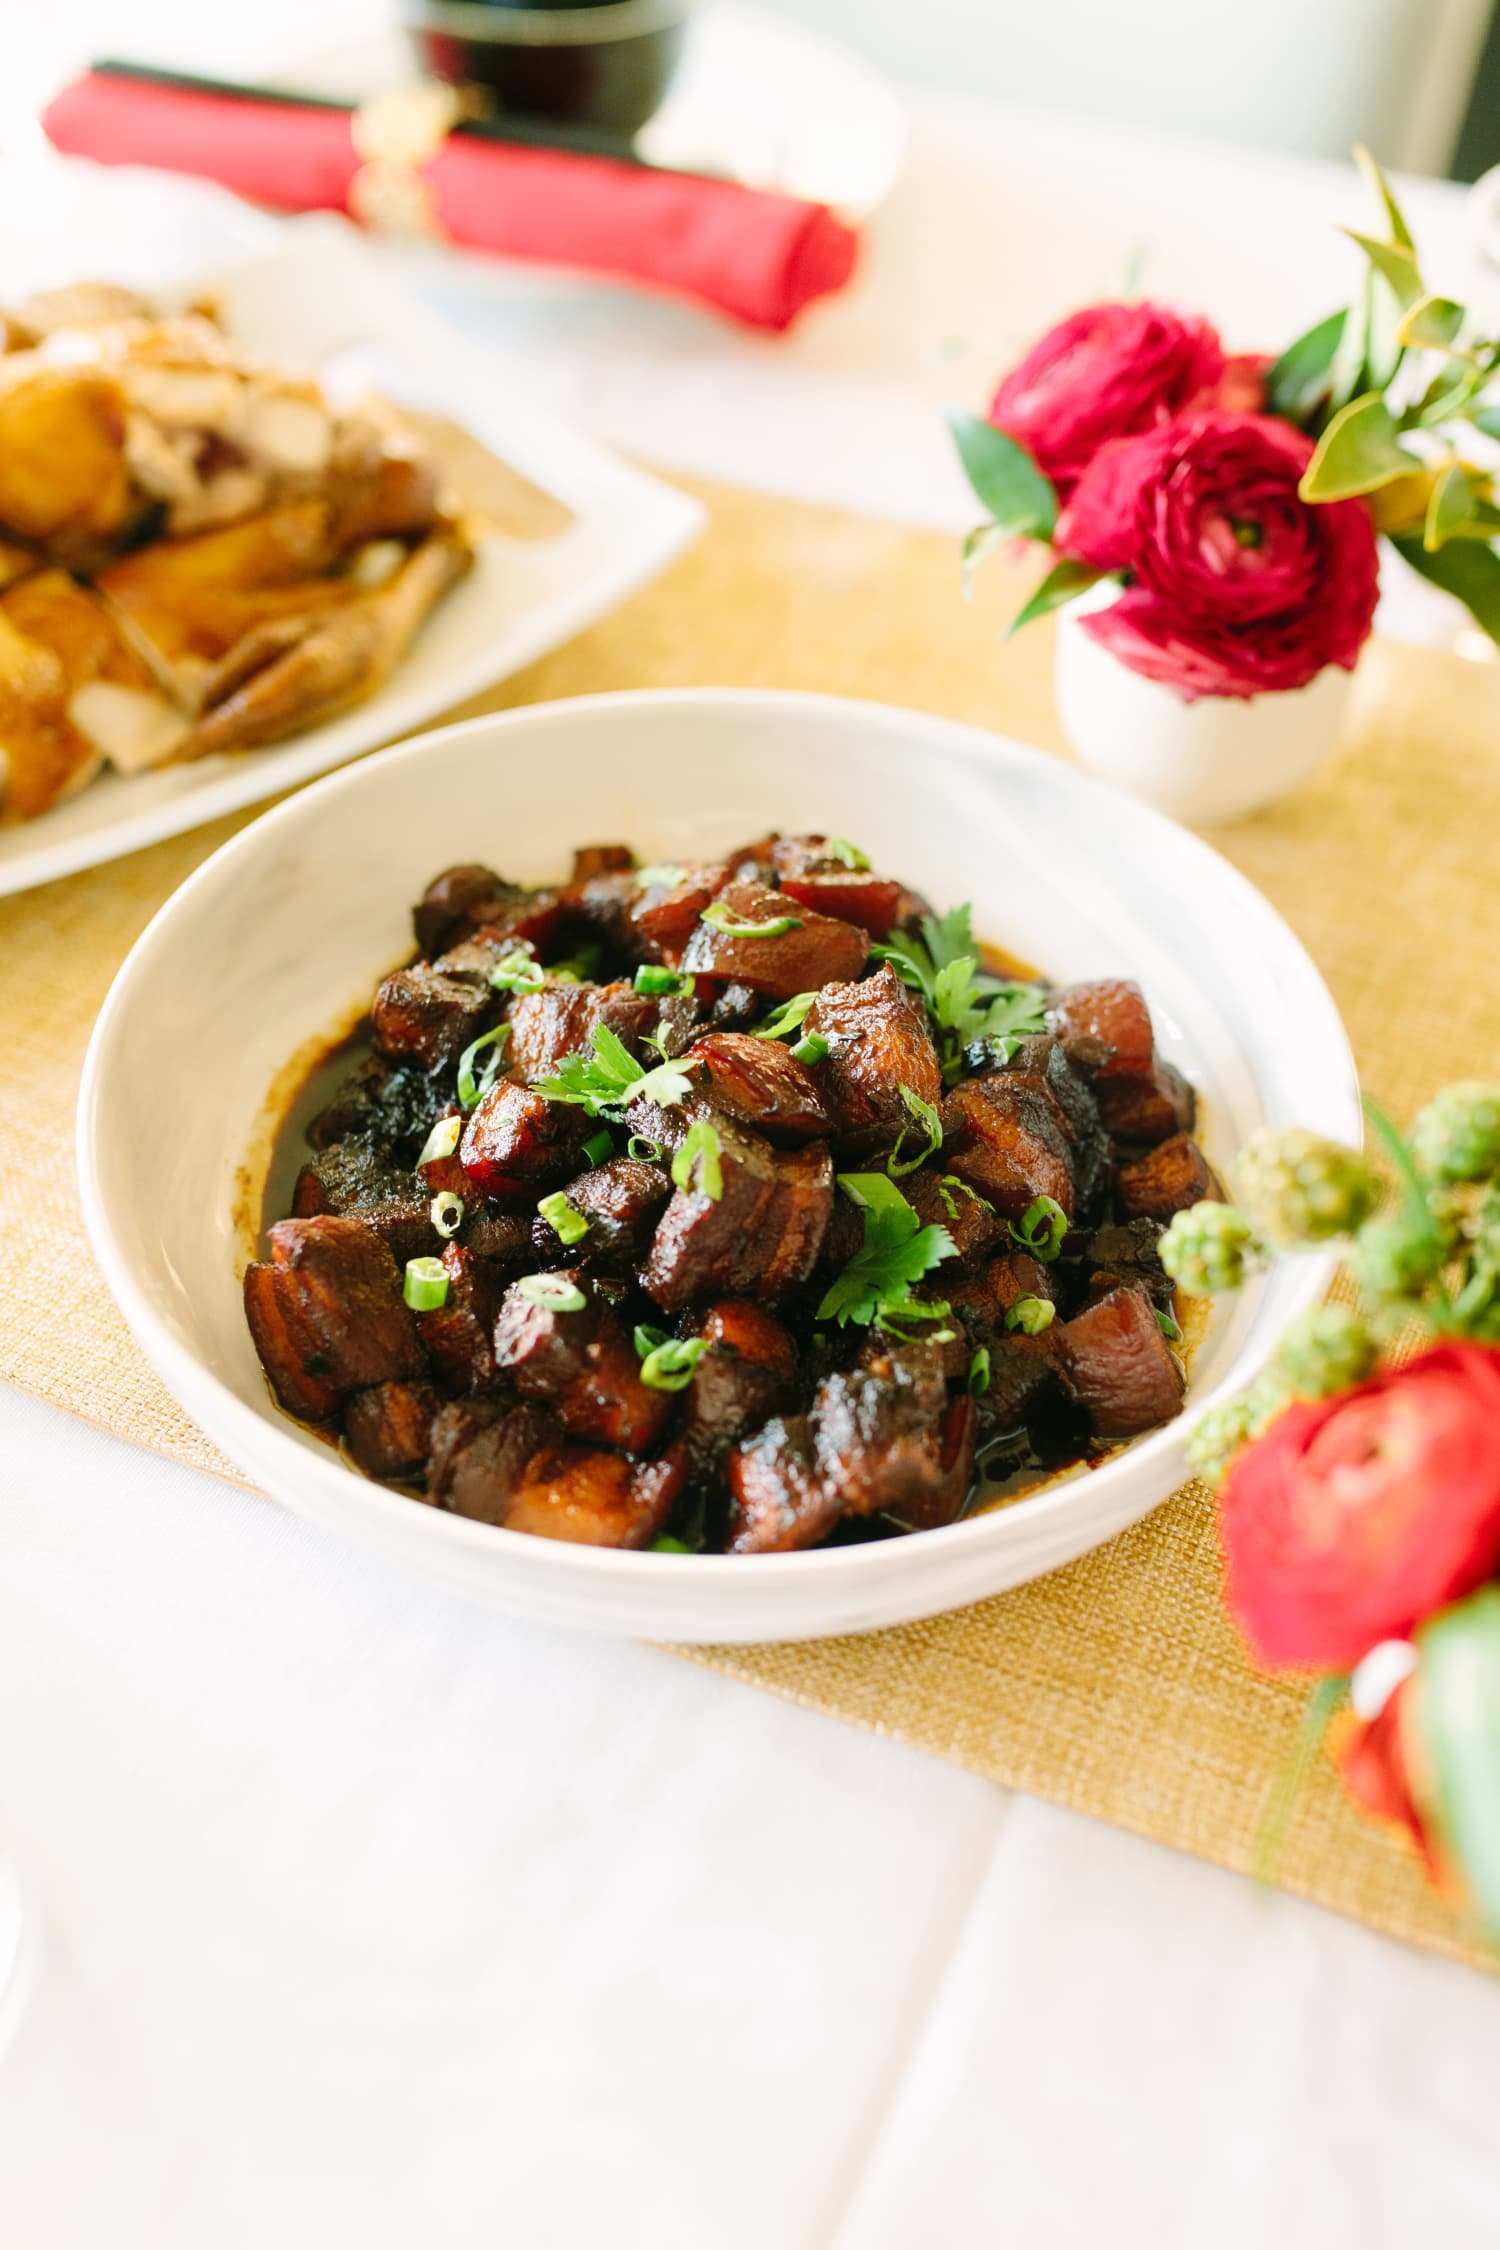 Chairman Mao's Red-Braised Pork Belly (Hong Shao Rou)